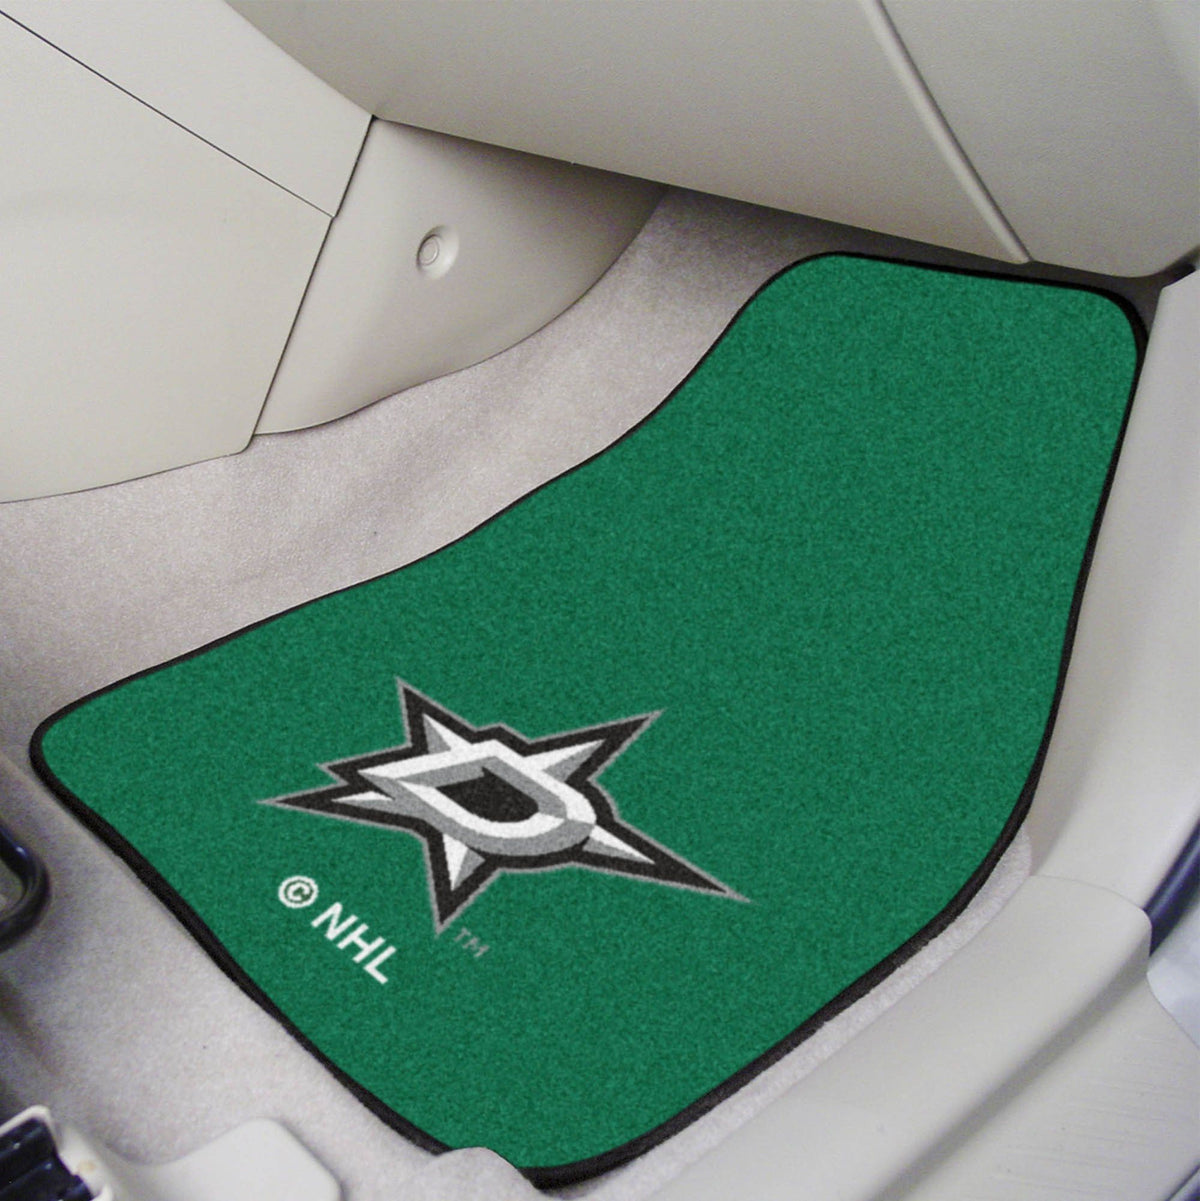 NHL - Carpet Car Mat, 2-Piece Set NHL Mats, Front Car Mats, 2-pc Carpet Car Mat Set, NHL, Auto Fan Mats Dallas Stars